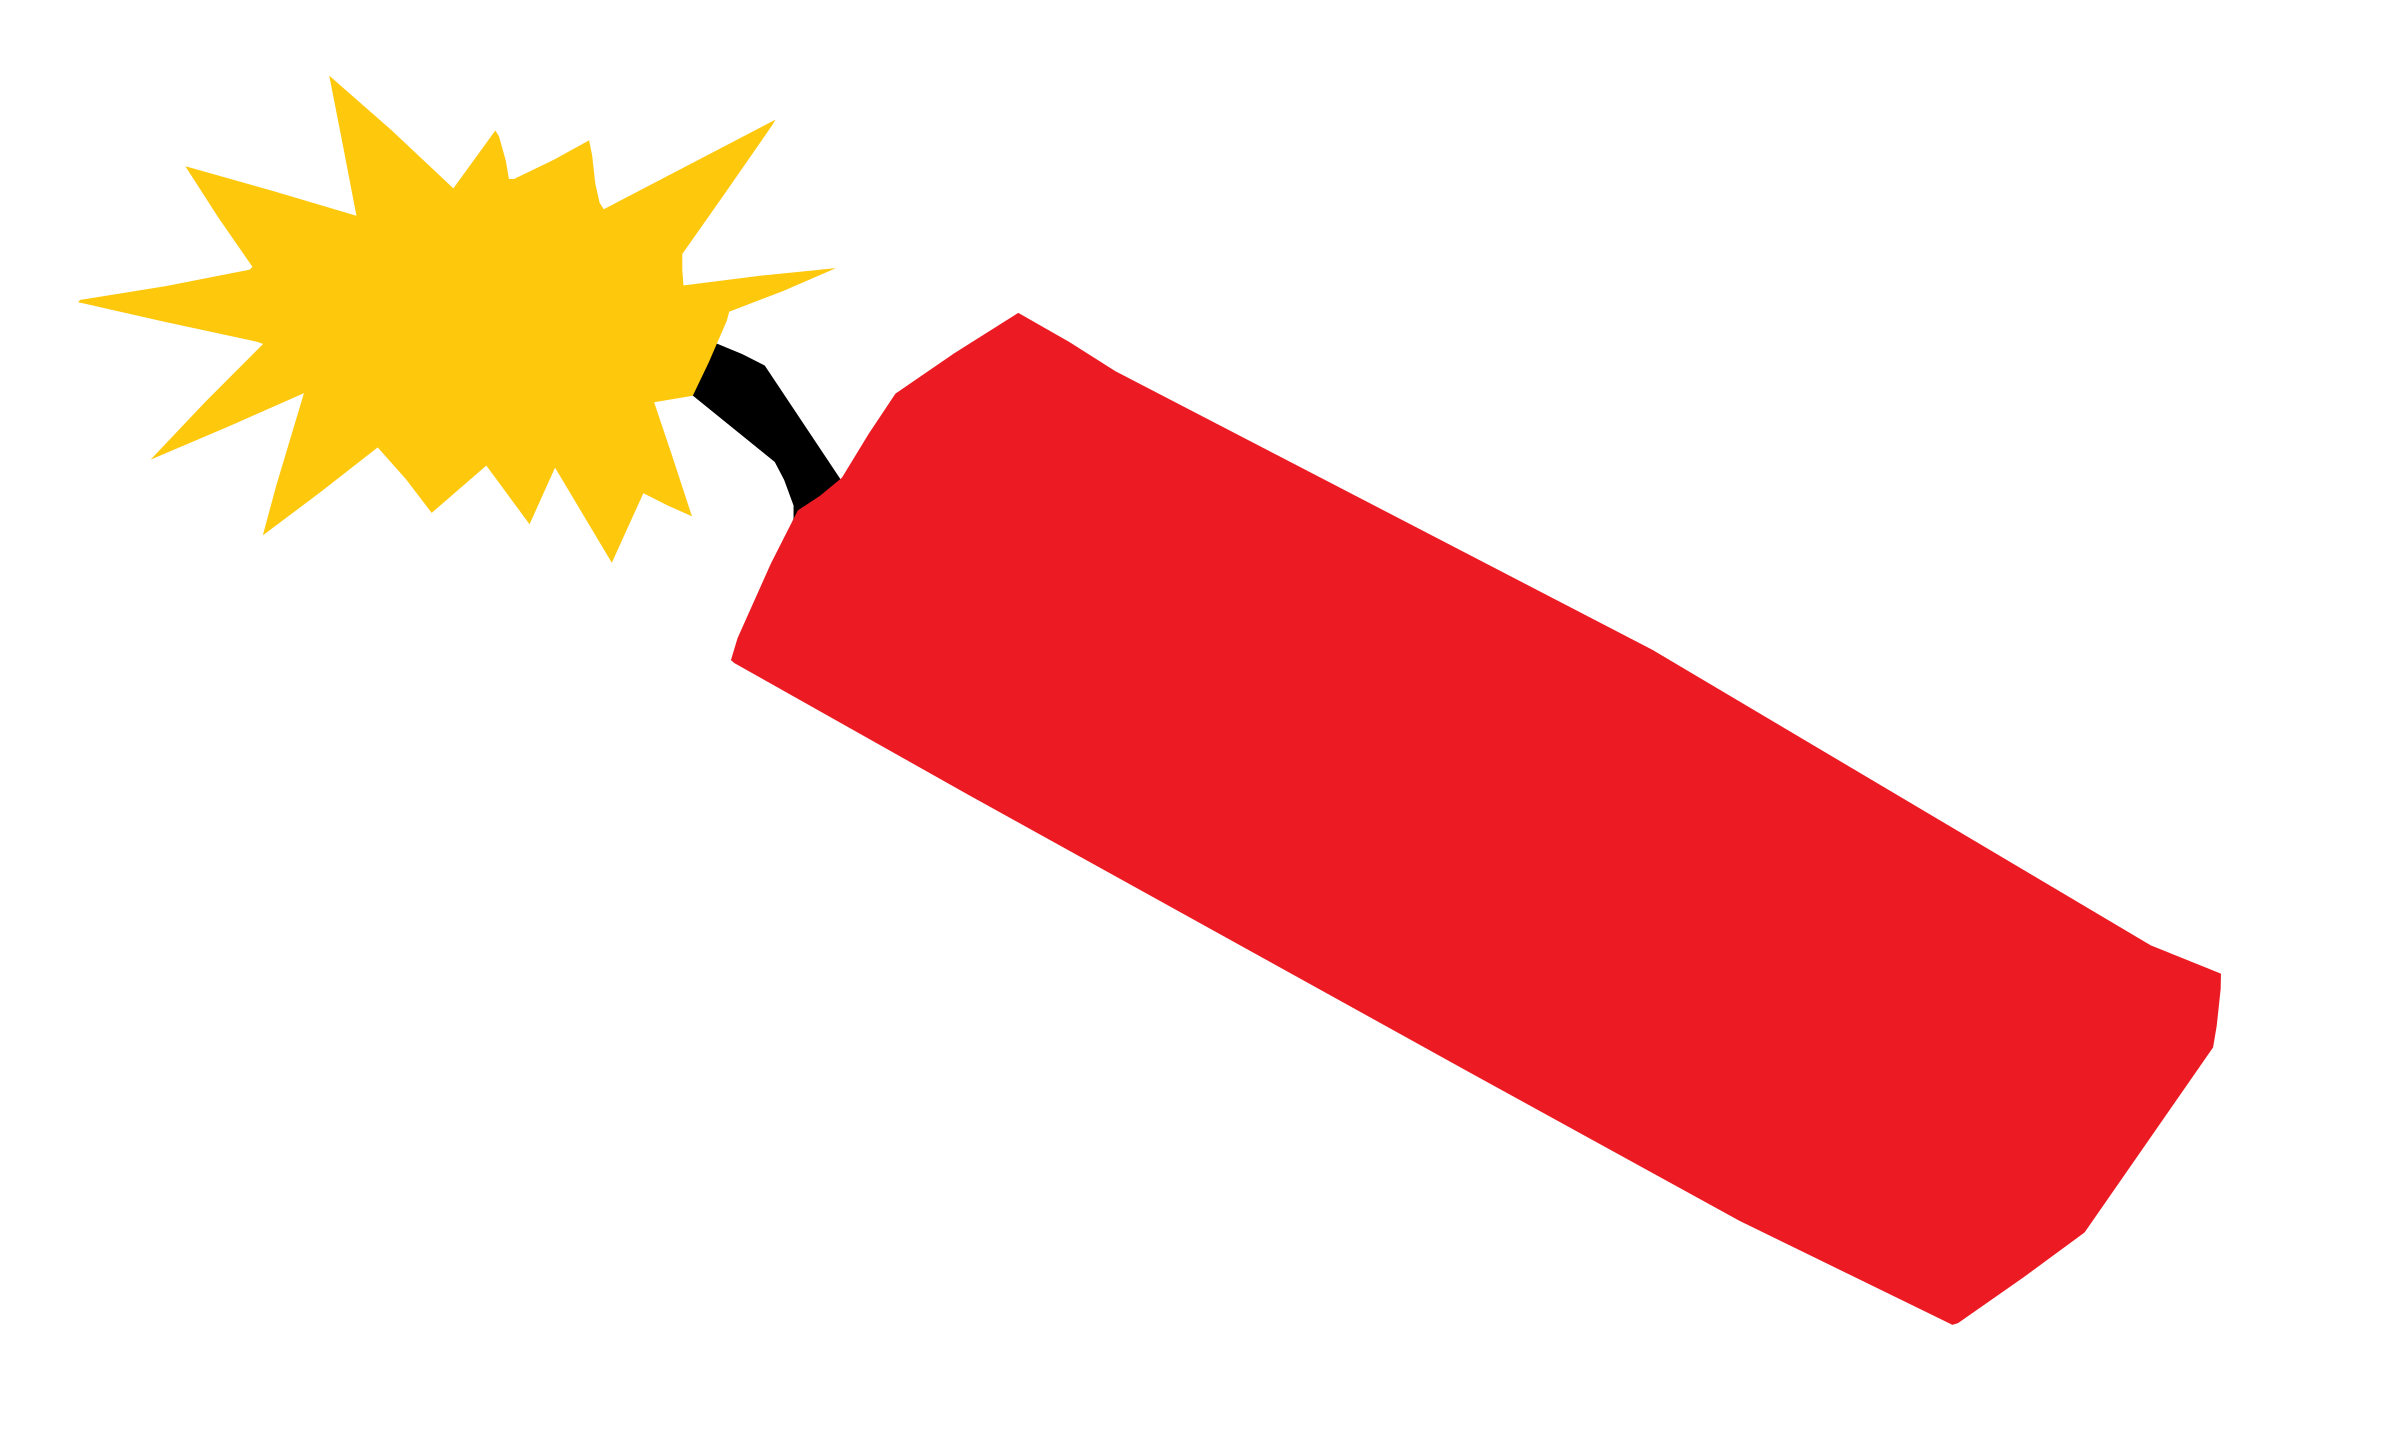 TNT with short fuse vector clipart.